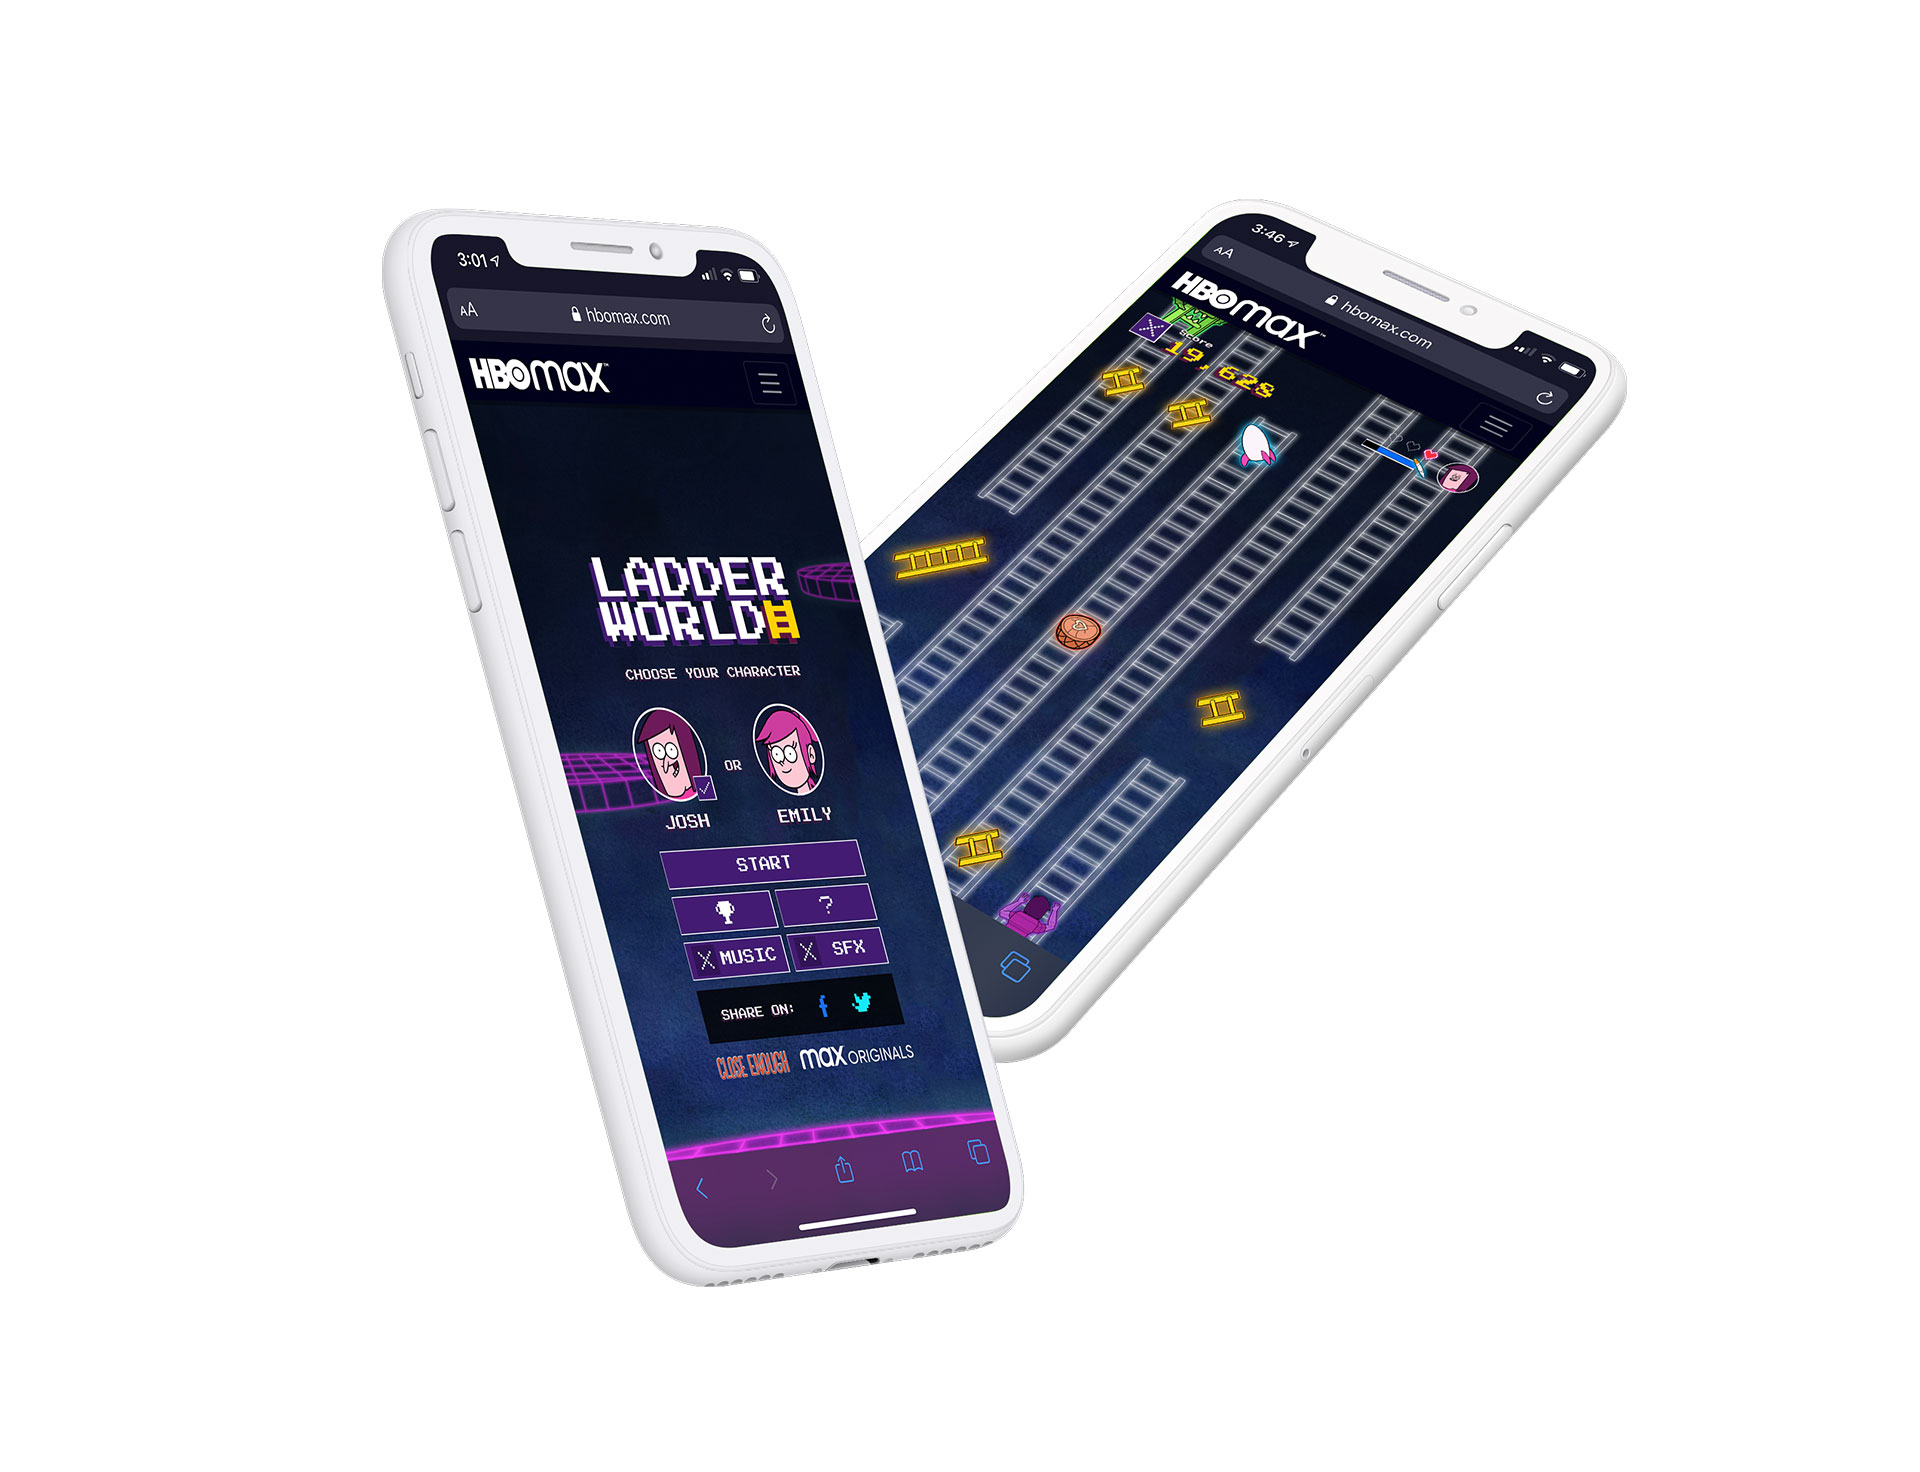 Mobile phones showcasing the game on an iOS web browser.